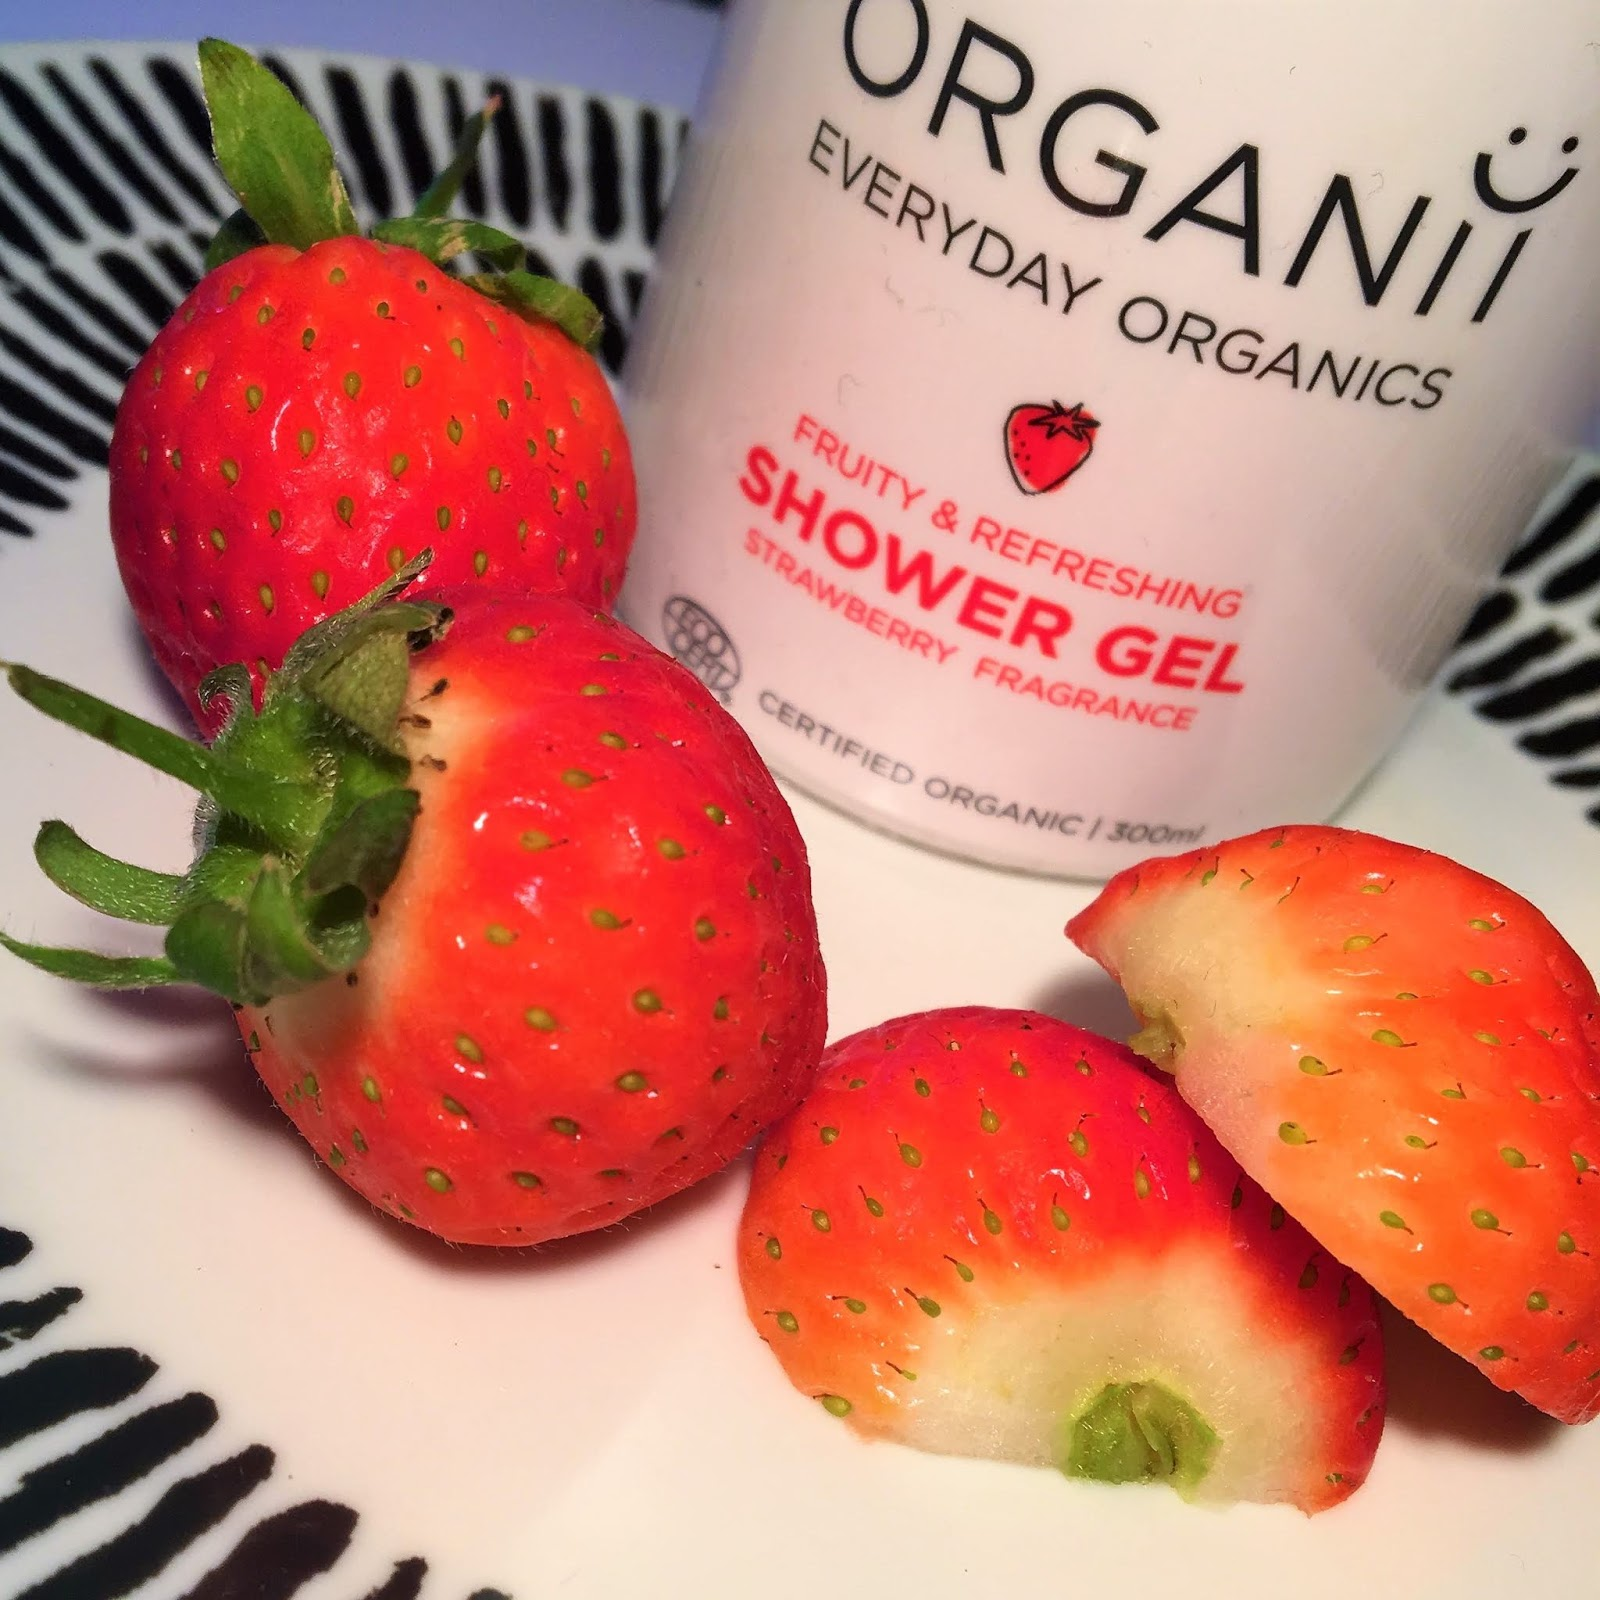 Strawberry Shower Gel by ORGANii